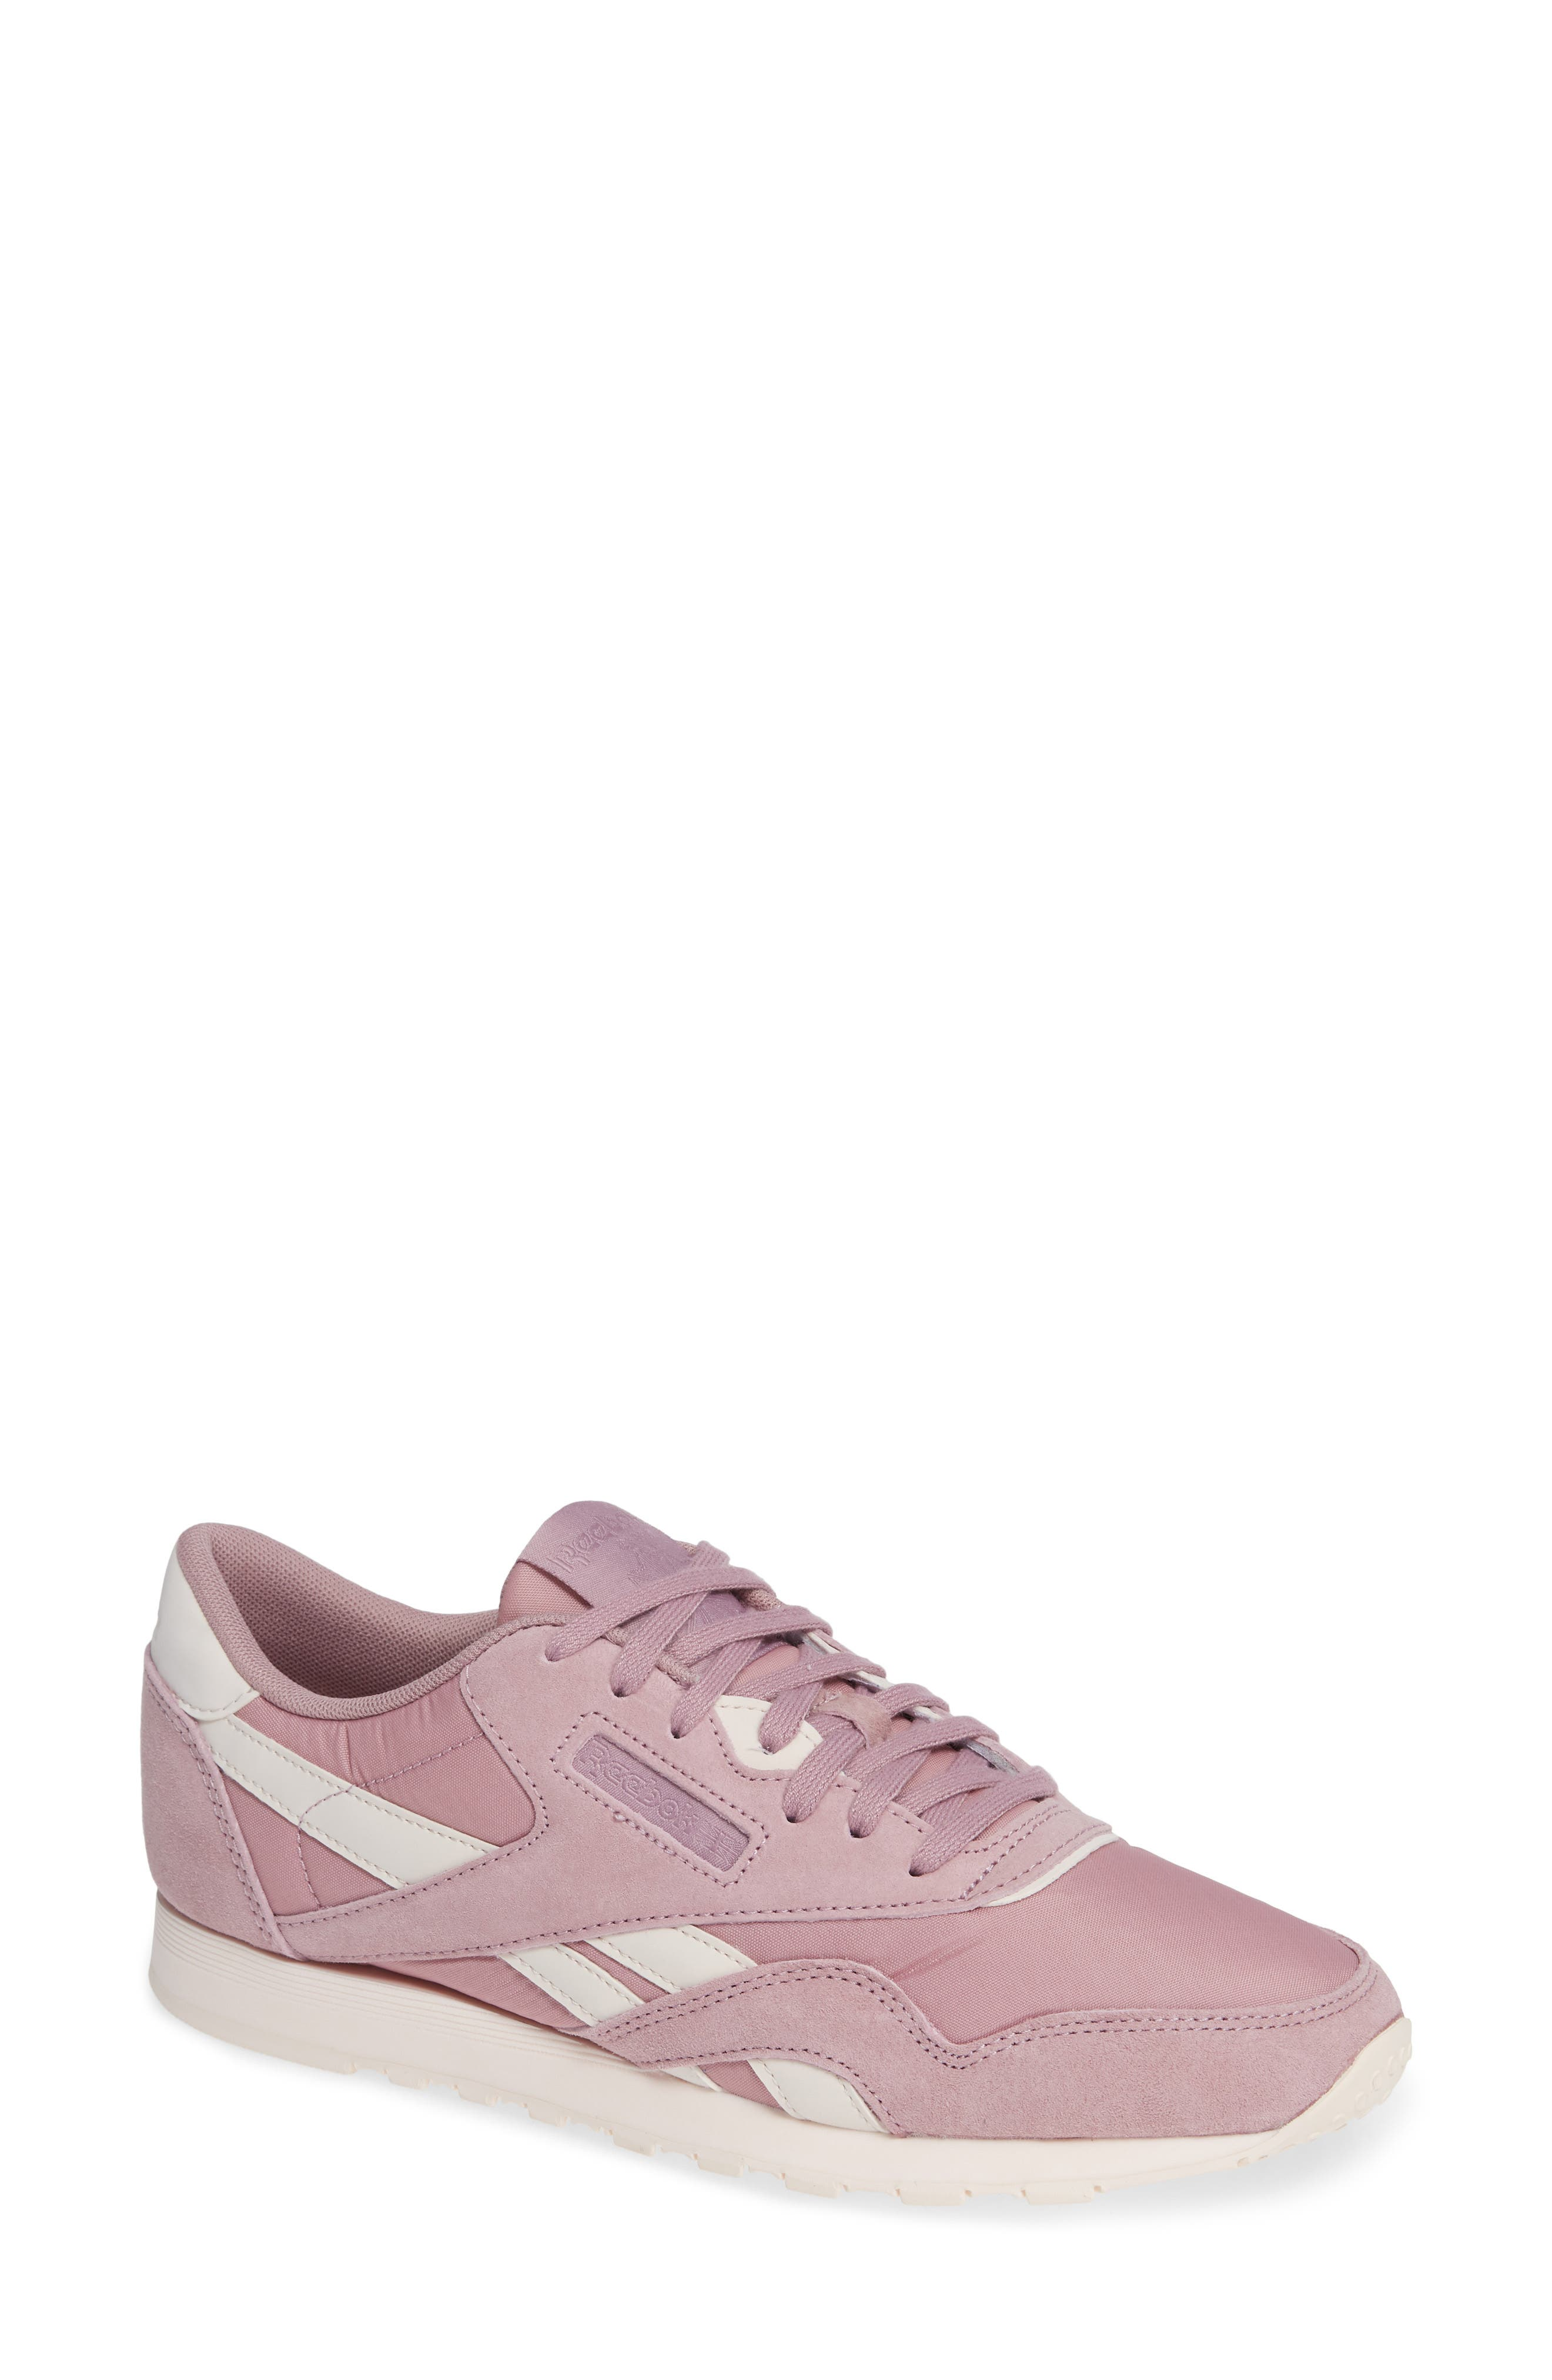 Classic Sneaker,                         Main,                         color, INFUSED LILAC/ PALE PINK